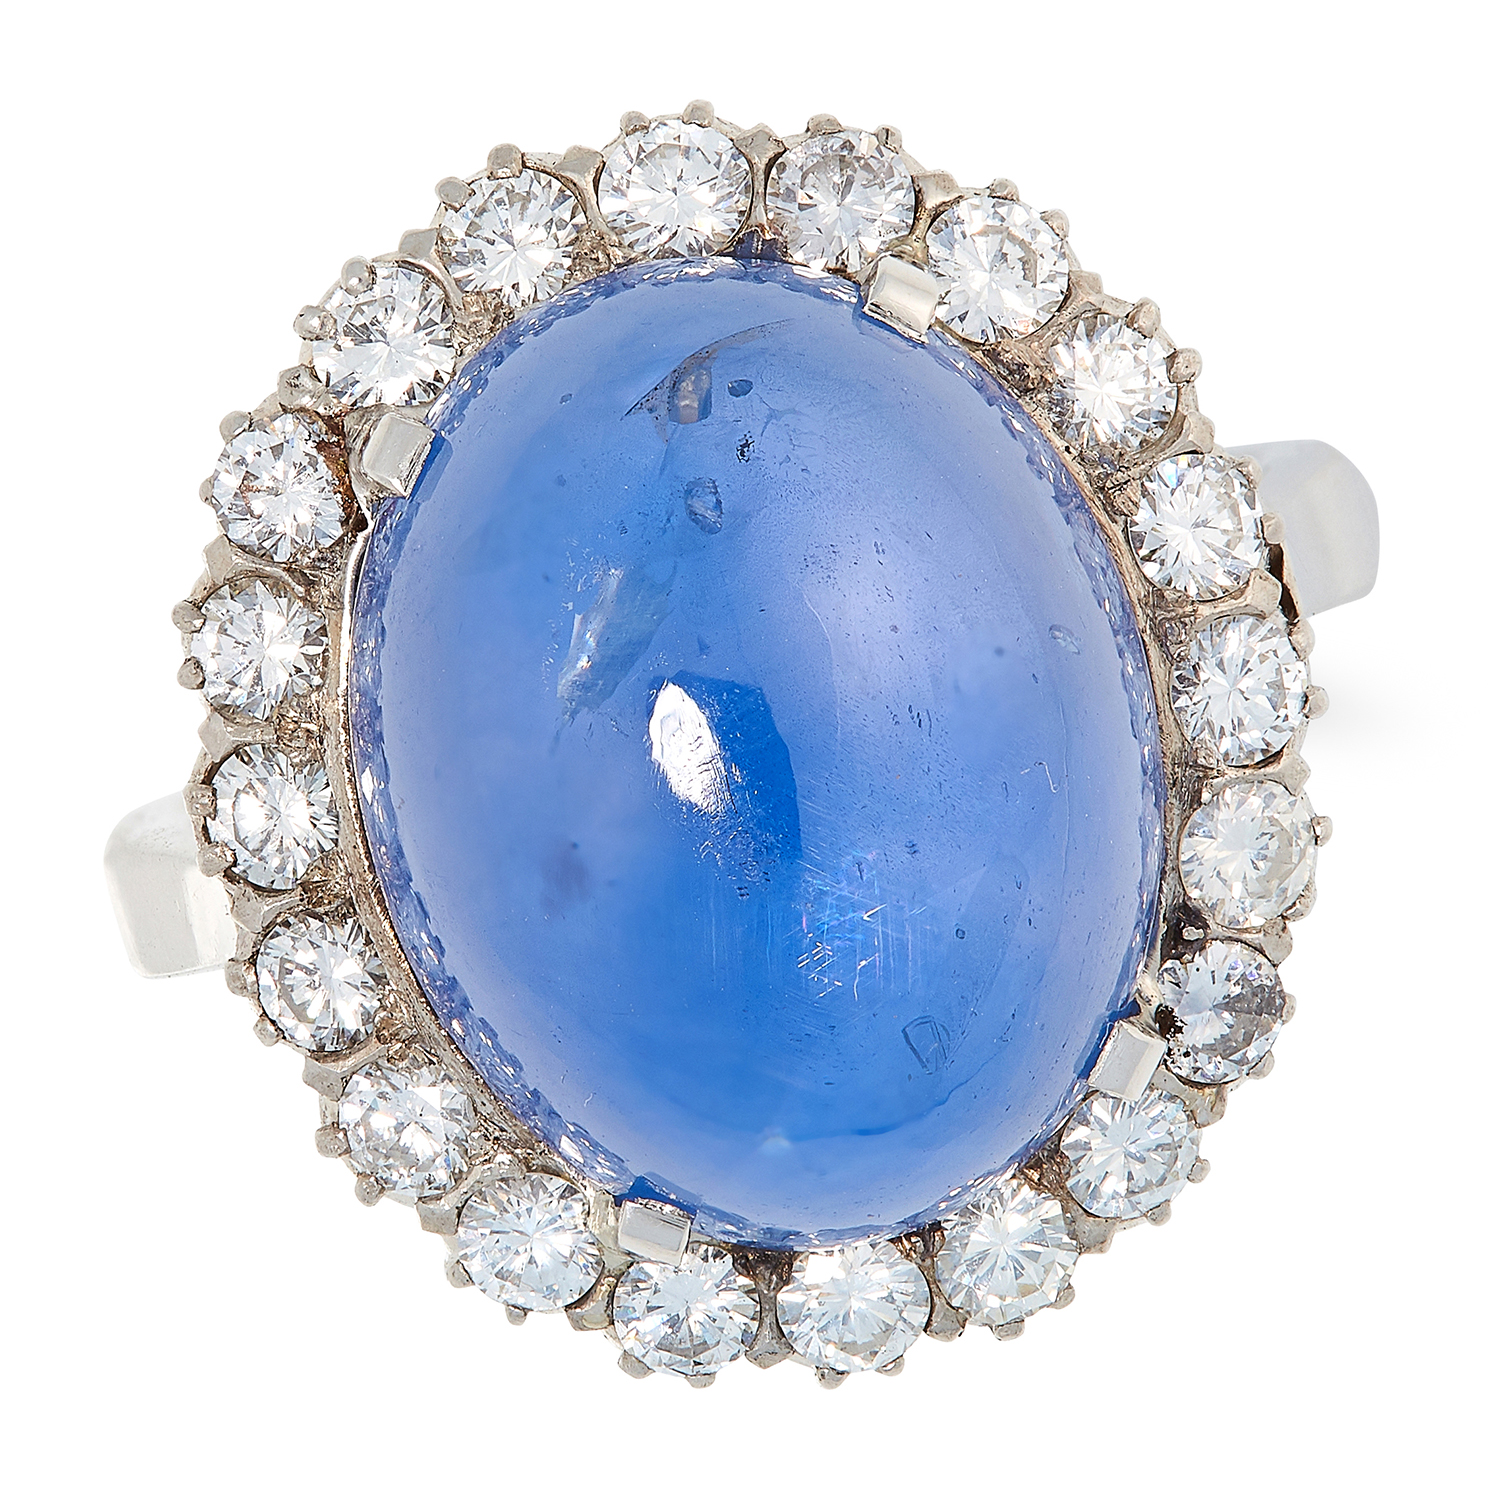 A CEYLON NO HEAT SAPPHIRE AND DIAMOND CLUSTER RING in platinum, set with a cabochon sapphire of 21.